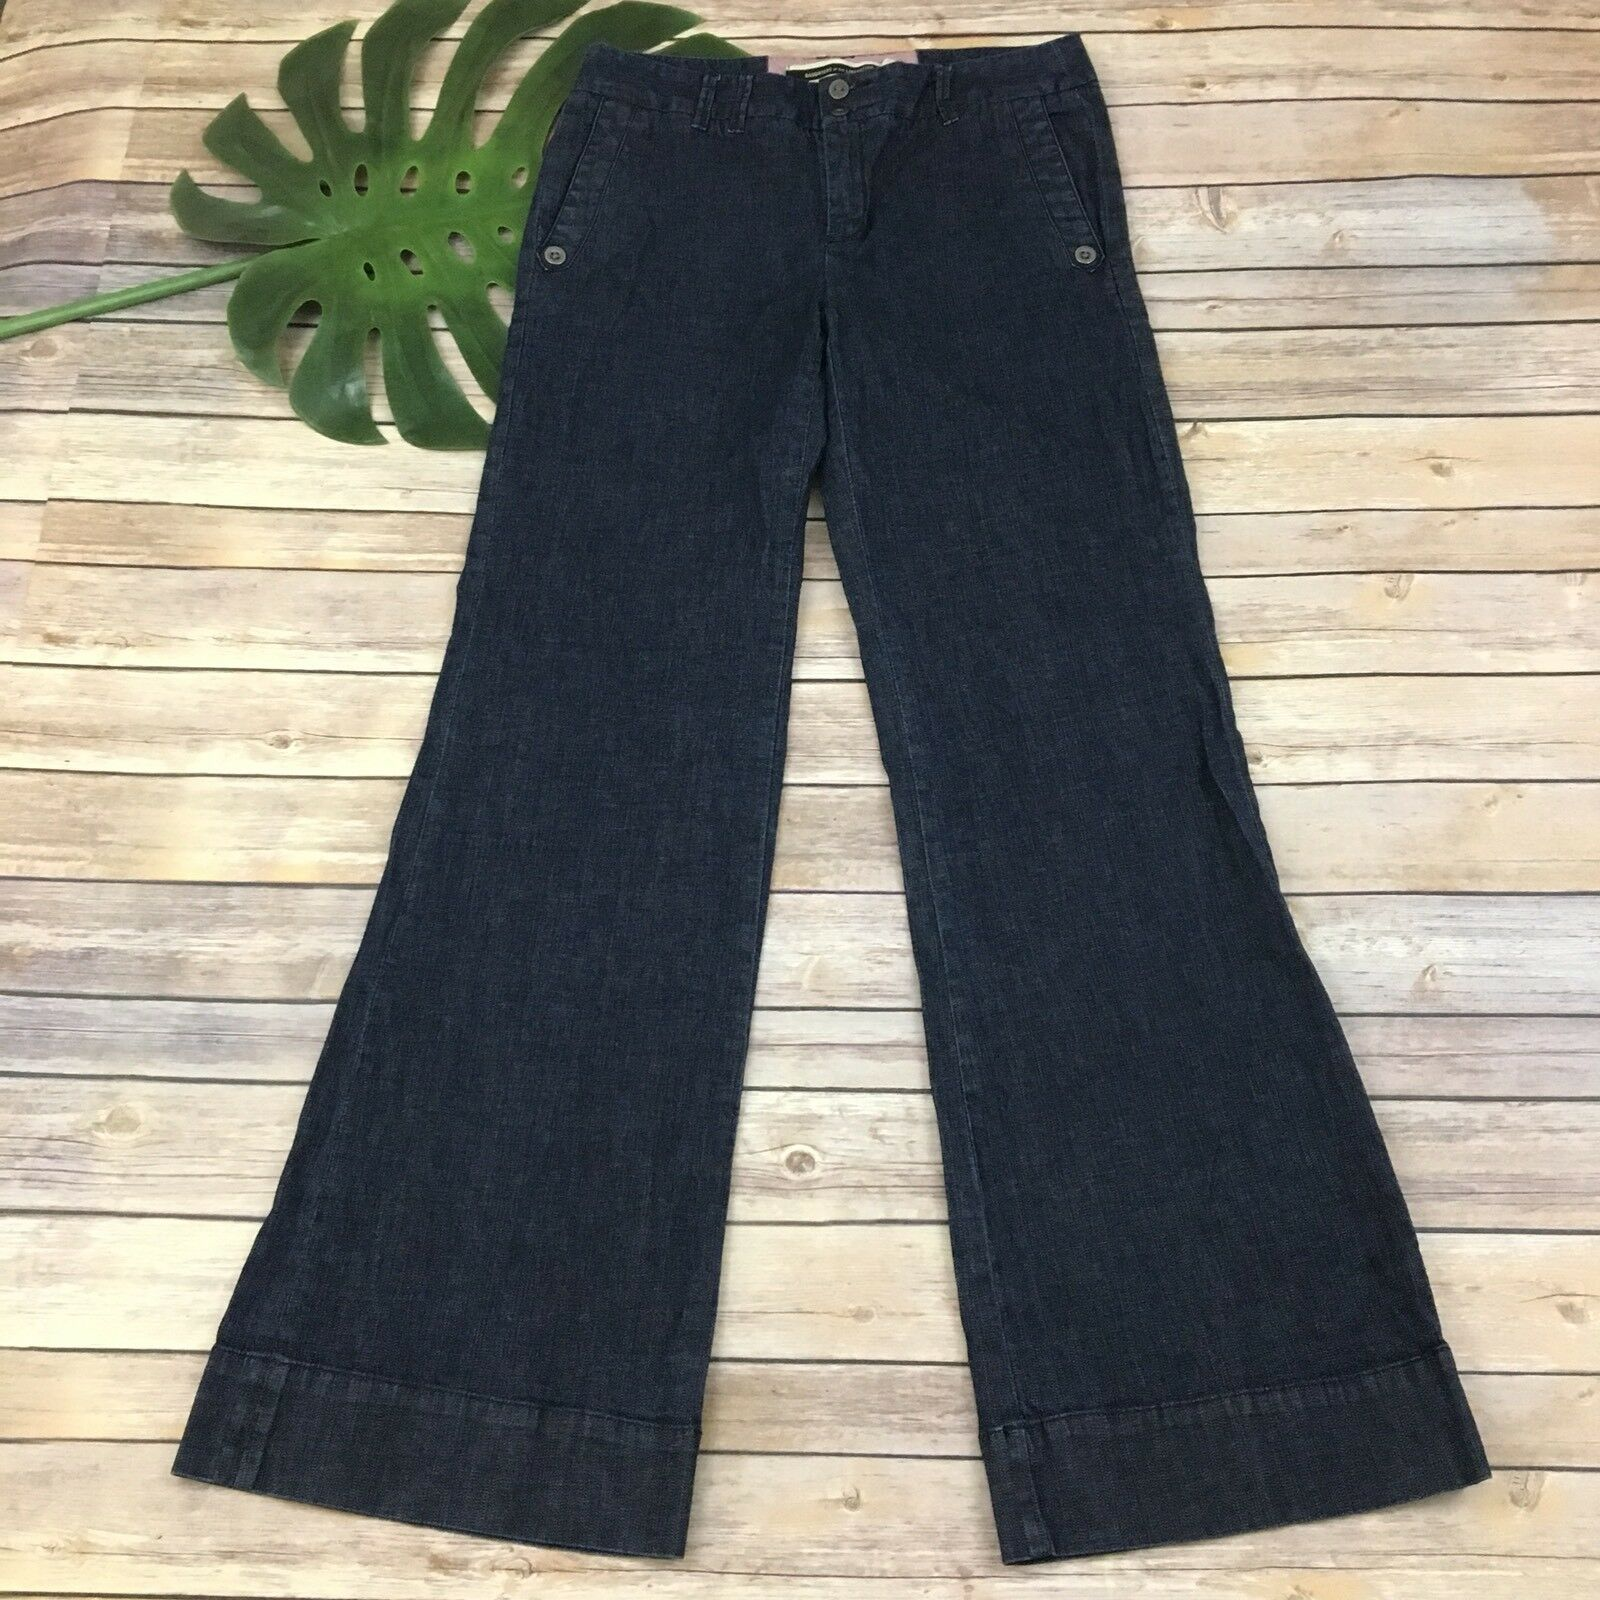 Daughters of the Liberation Anthropologie Wide Leg Jeans Size 6 Dark Wash